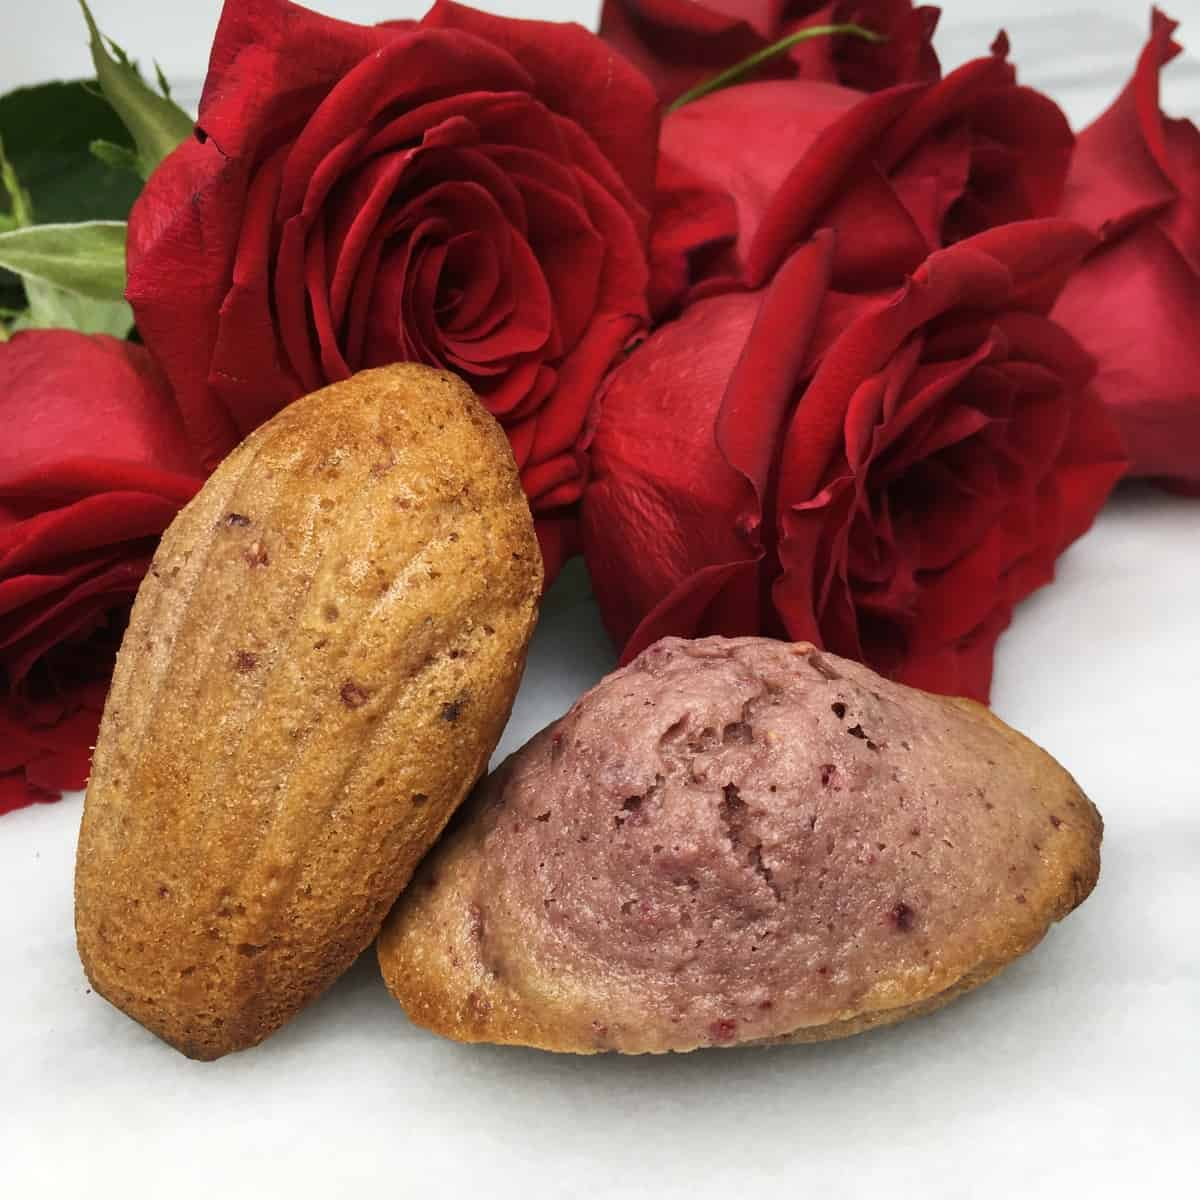 Two raspberry rosewater madeleines with red roses on the background